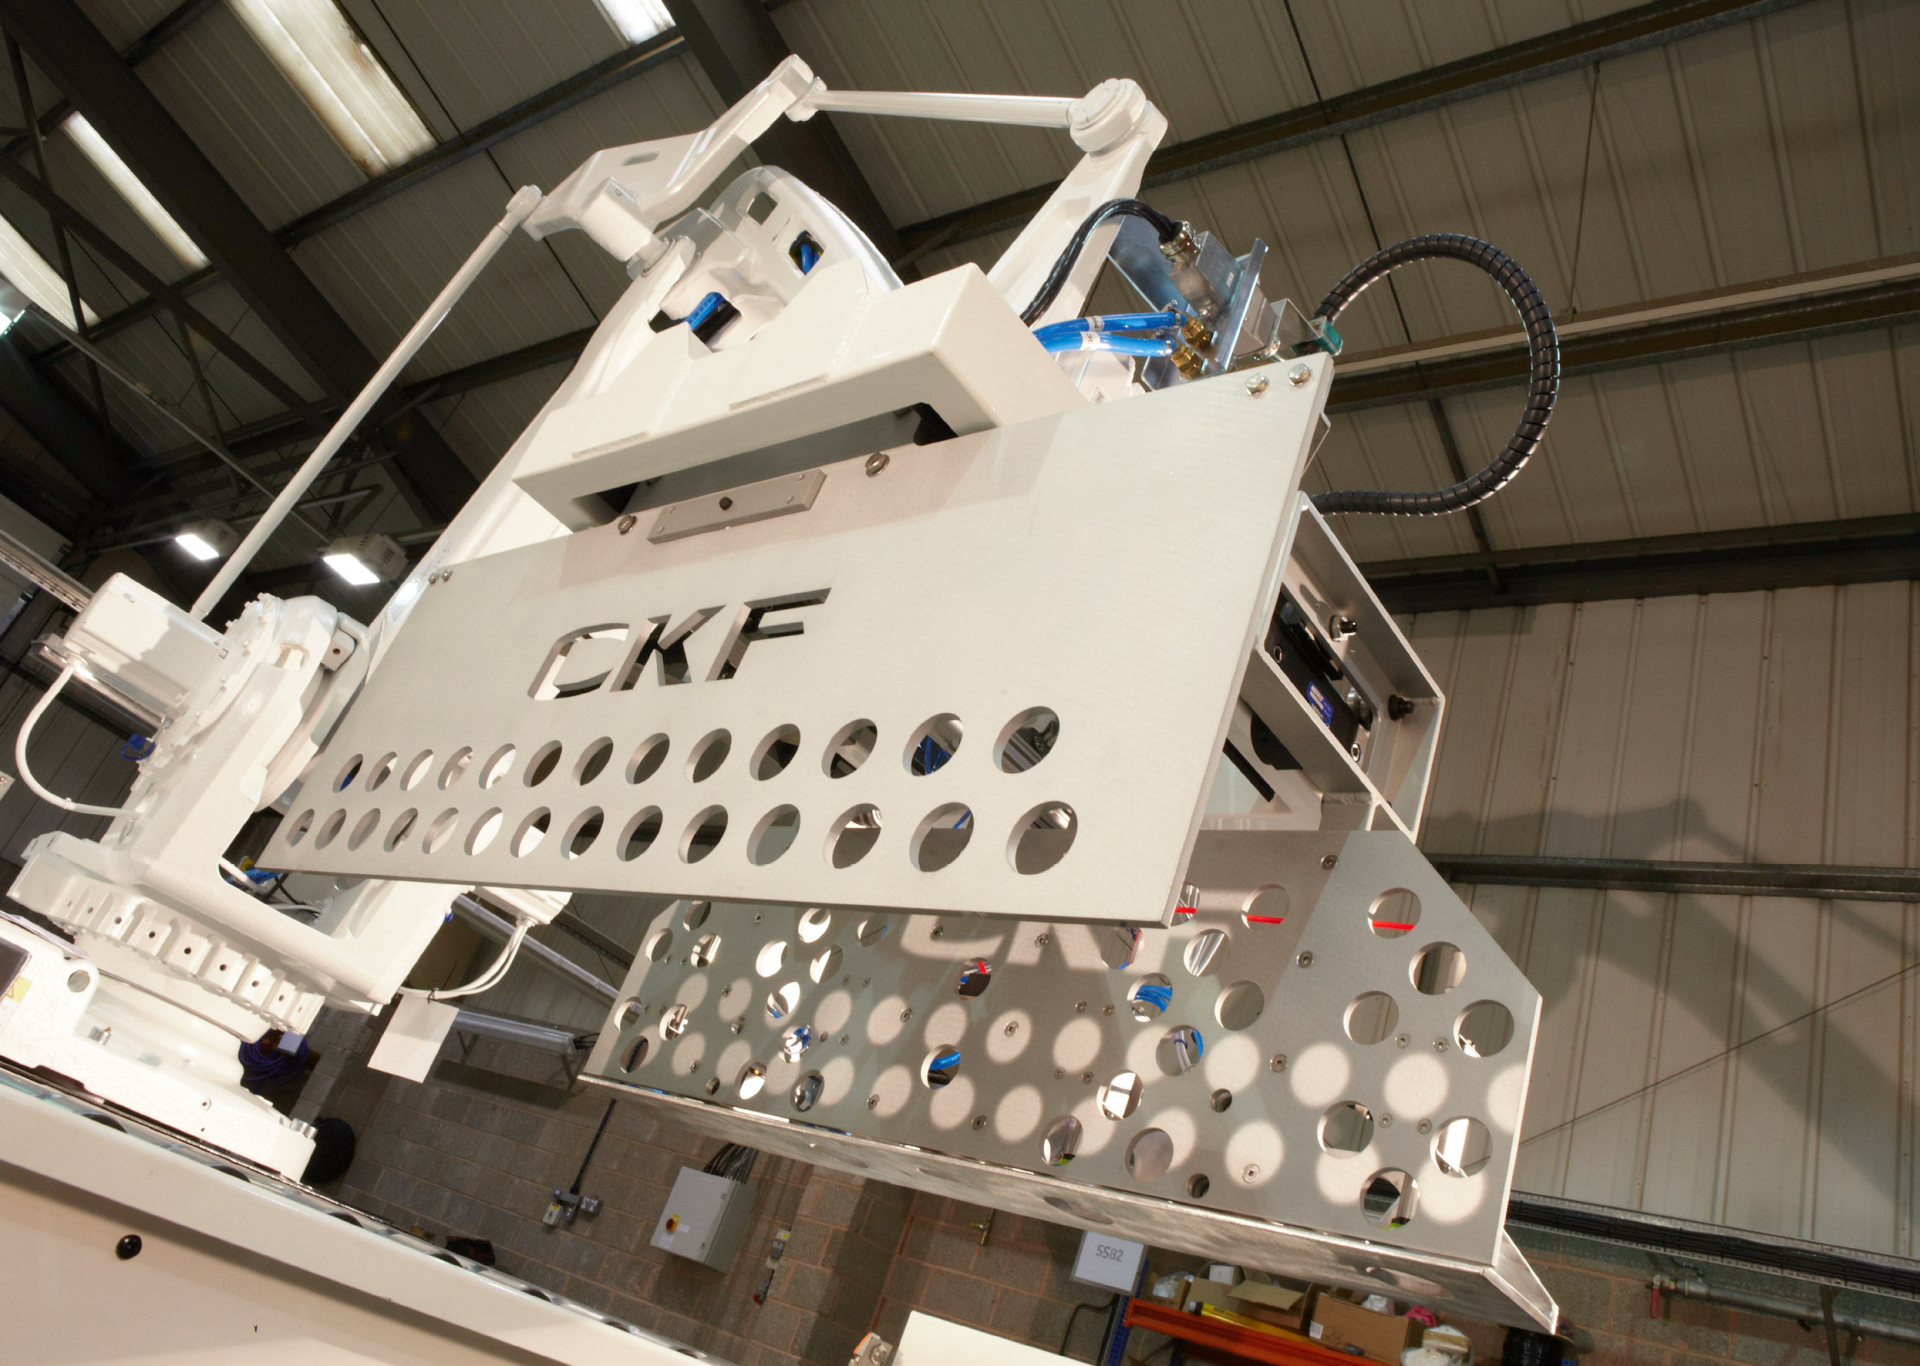 In 2018, CKF Systems are celebrating 30 years of providing robotics and automation solutions to the manufacturing industry.